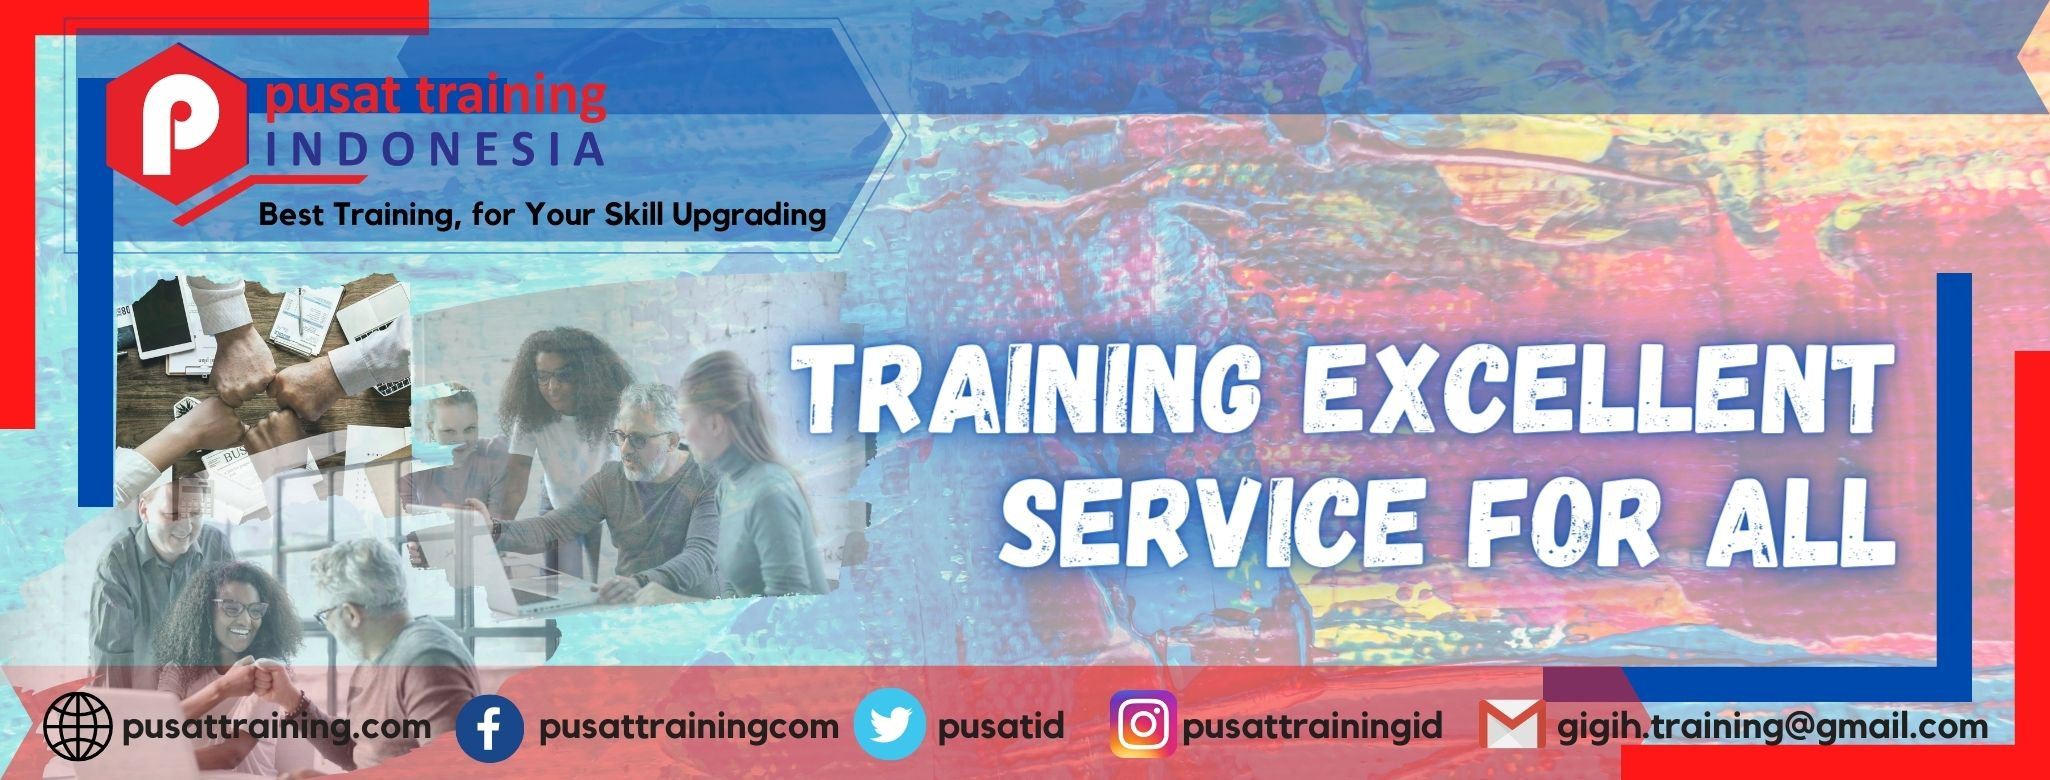 training-excellent-service-for-all